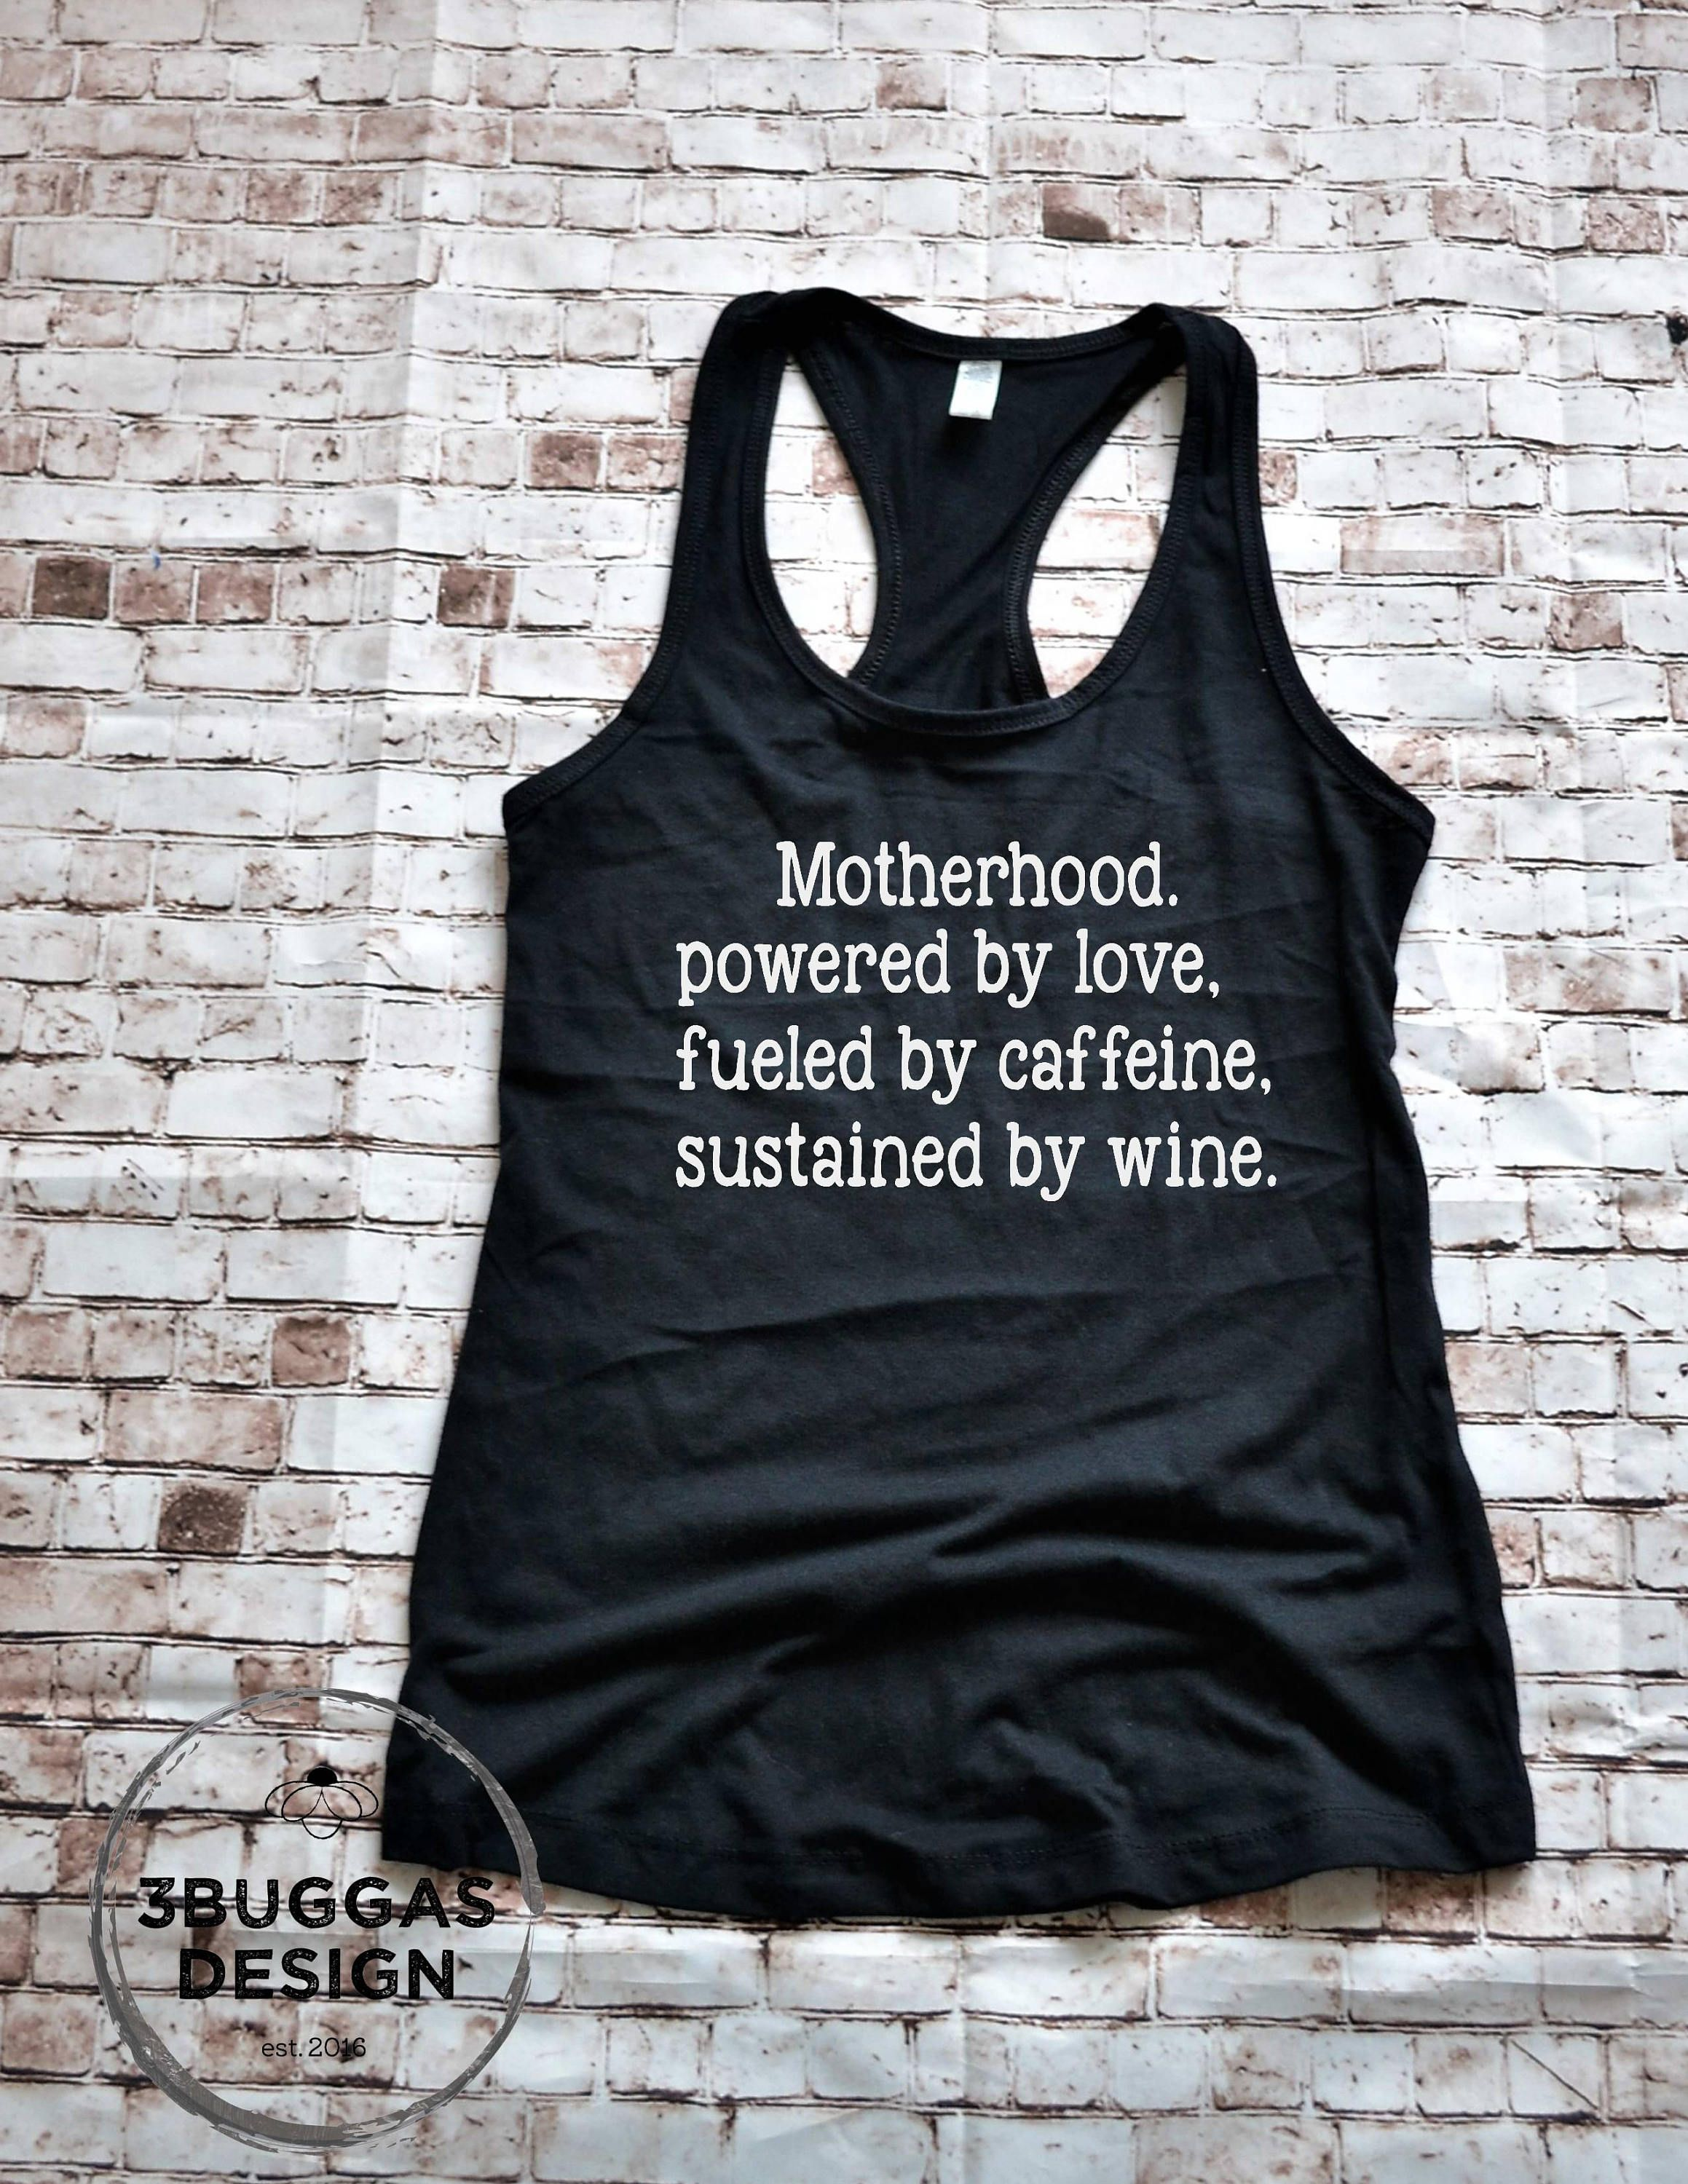 3588a94b ... Womens Running Motherhood Shirt By 3buggasdesign On. Funny Workout Tank  Sayings Clothes Tops